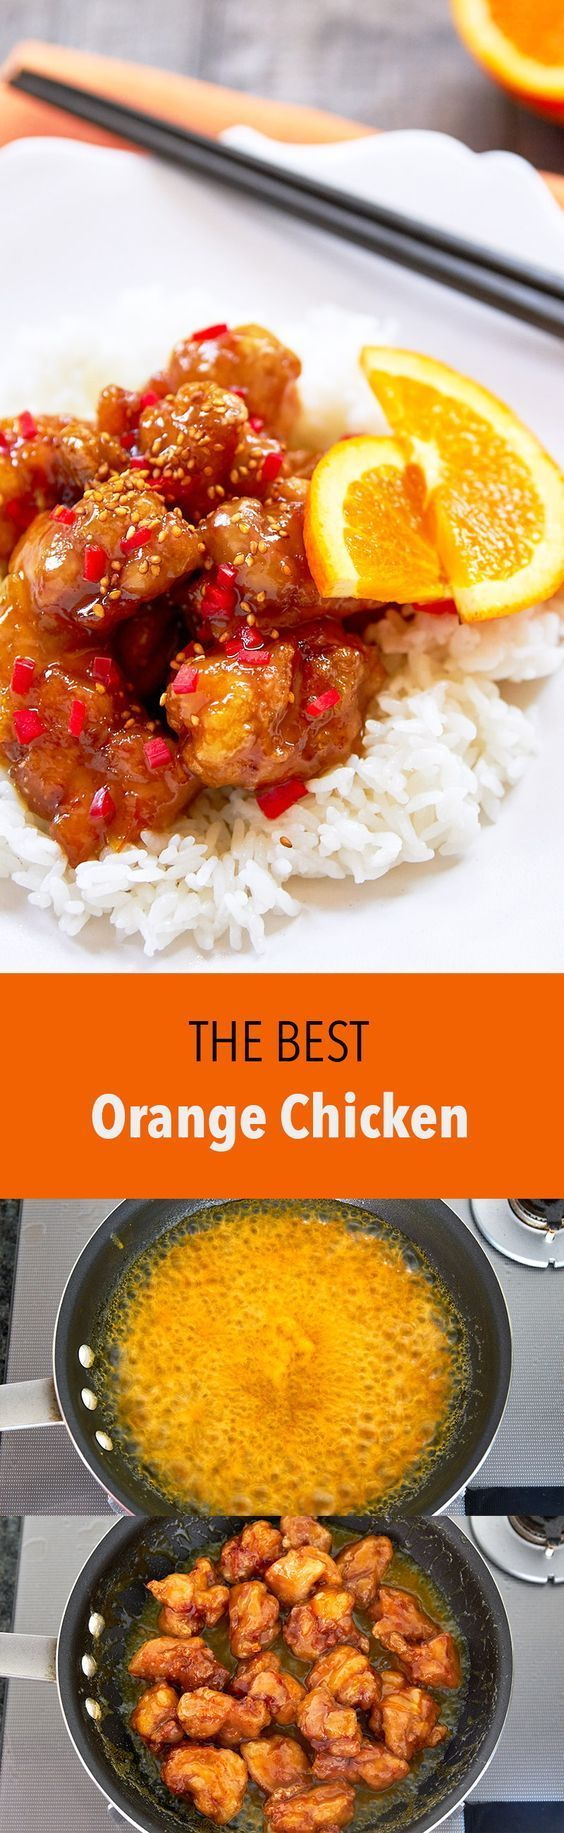 Best Orange Chicken #chineseorangechicken With orange juice, marmalade and orange zest in the sauce and big juicy pieces of ginger marinated chicken, this easy Orange Chicken beats take-out Chinese. #chineseorangechicken